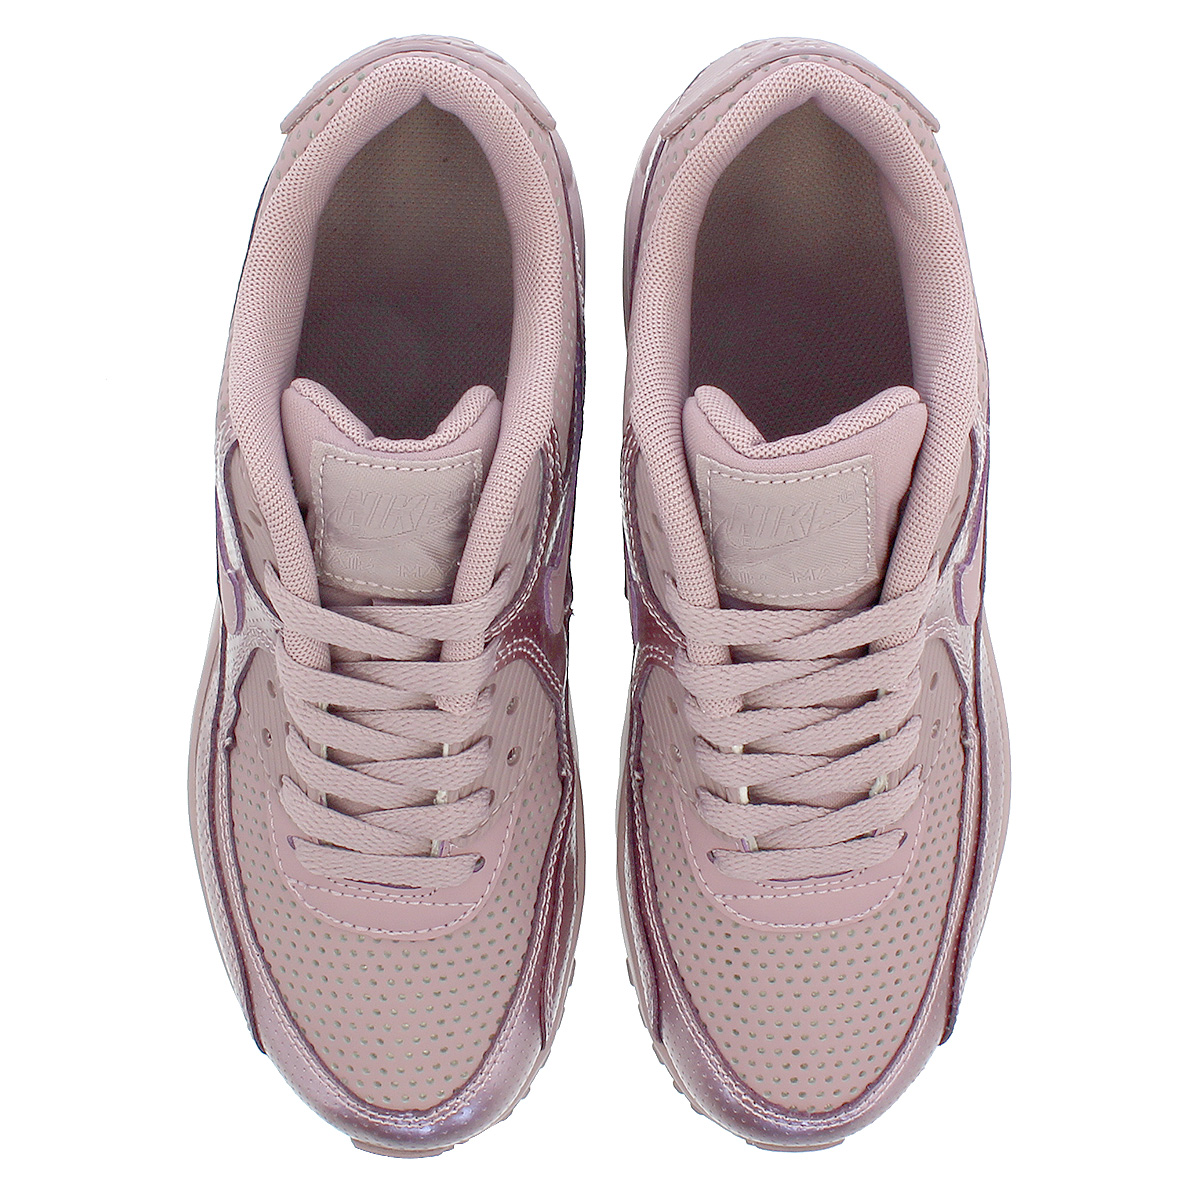 NIKE AIR MAX 90 SE LTR GS ELEMENTAL ROSE Kie Ney AMAX 90 SE leather GS ELEMENTAL ROSE 859,633 600